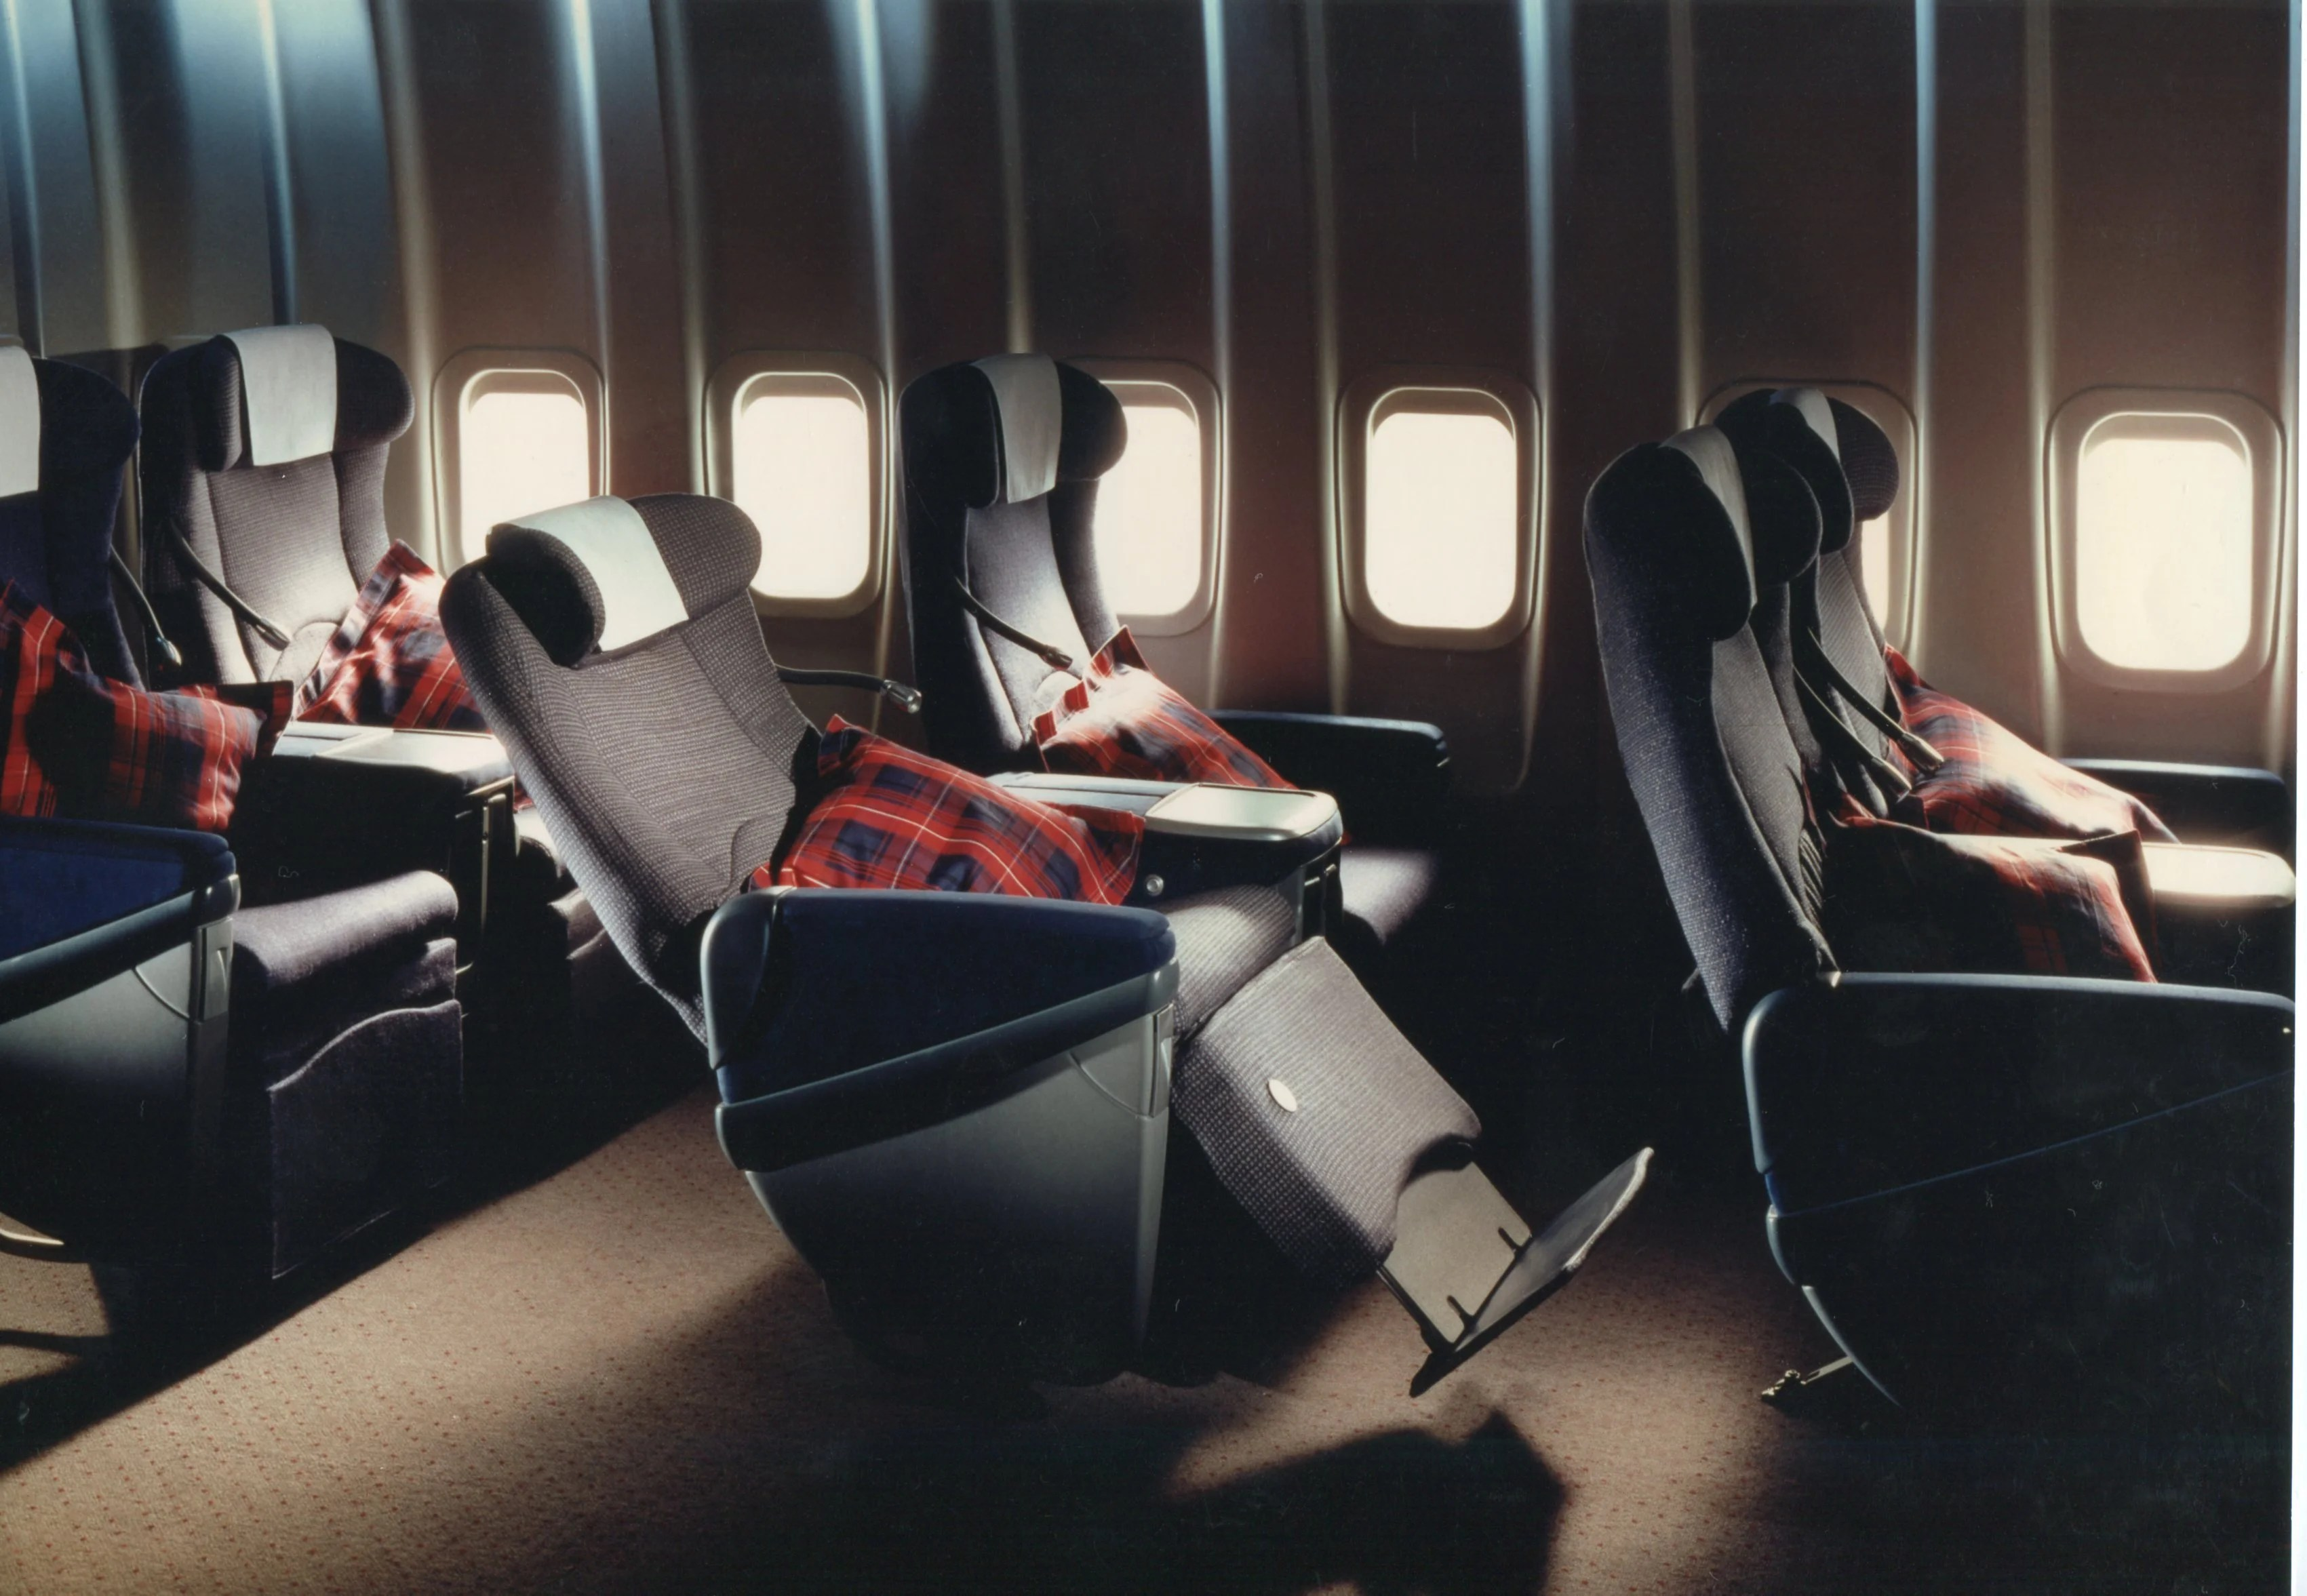 How We Got to Flat The Evolution of Business Class